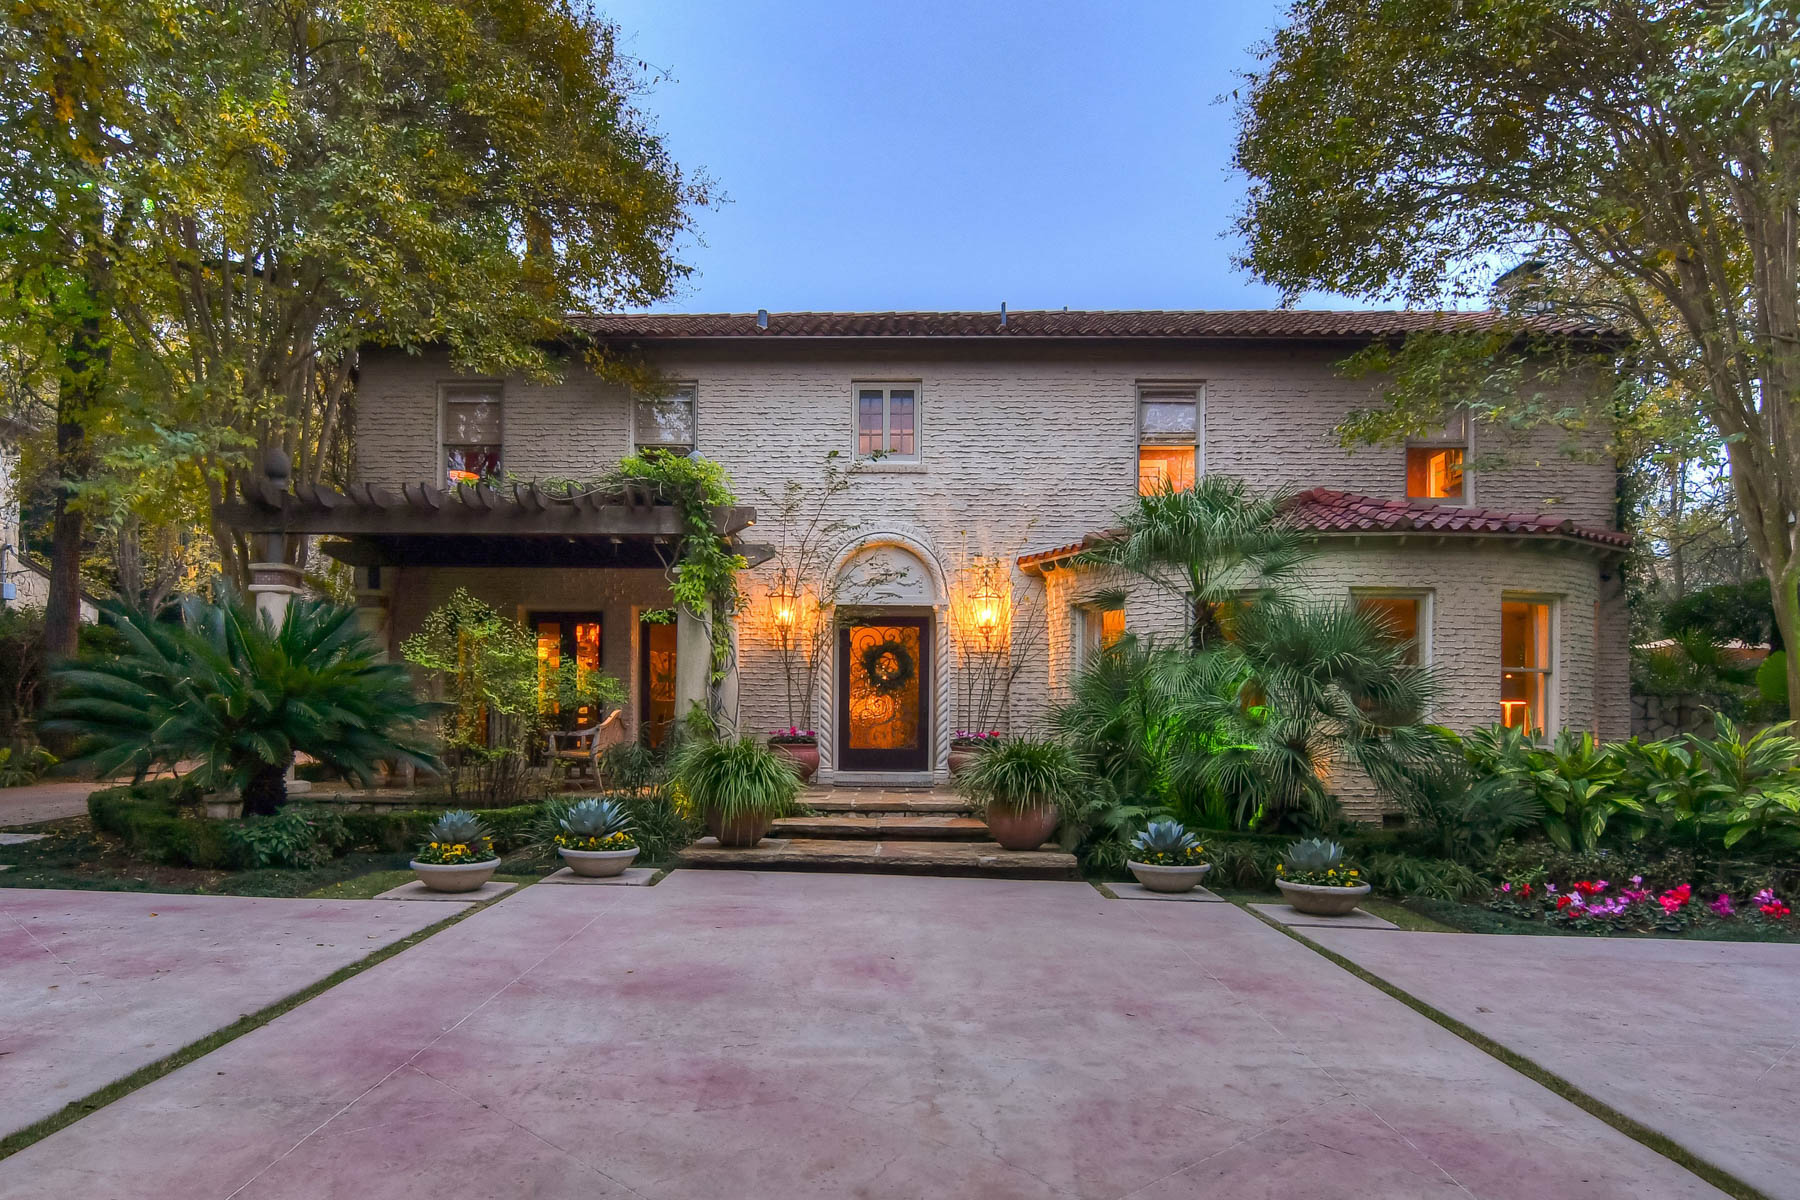 Single Family Home for Sale at Vintage 1920's Olmos Park Estate 408 Park Dr Olmos Park, San Antonio, Texas, 78212 United States